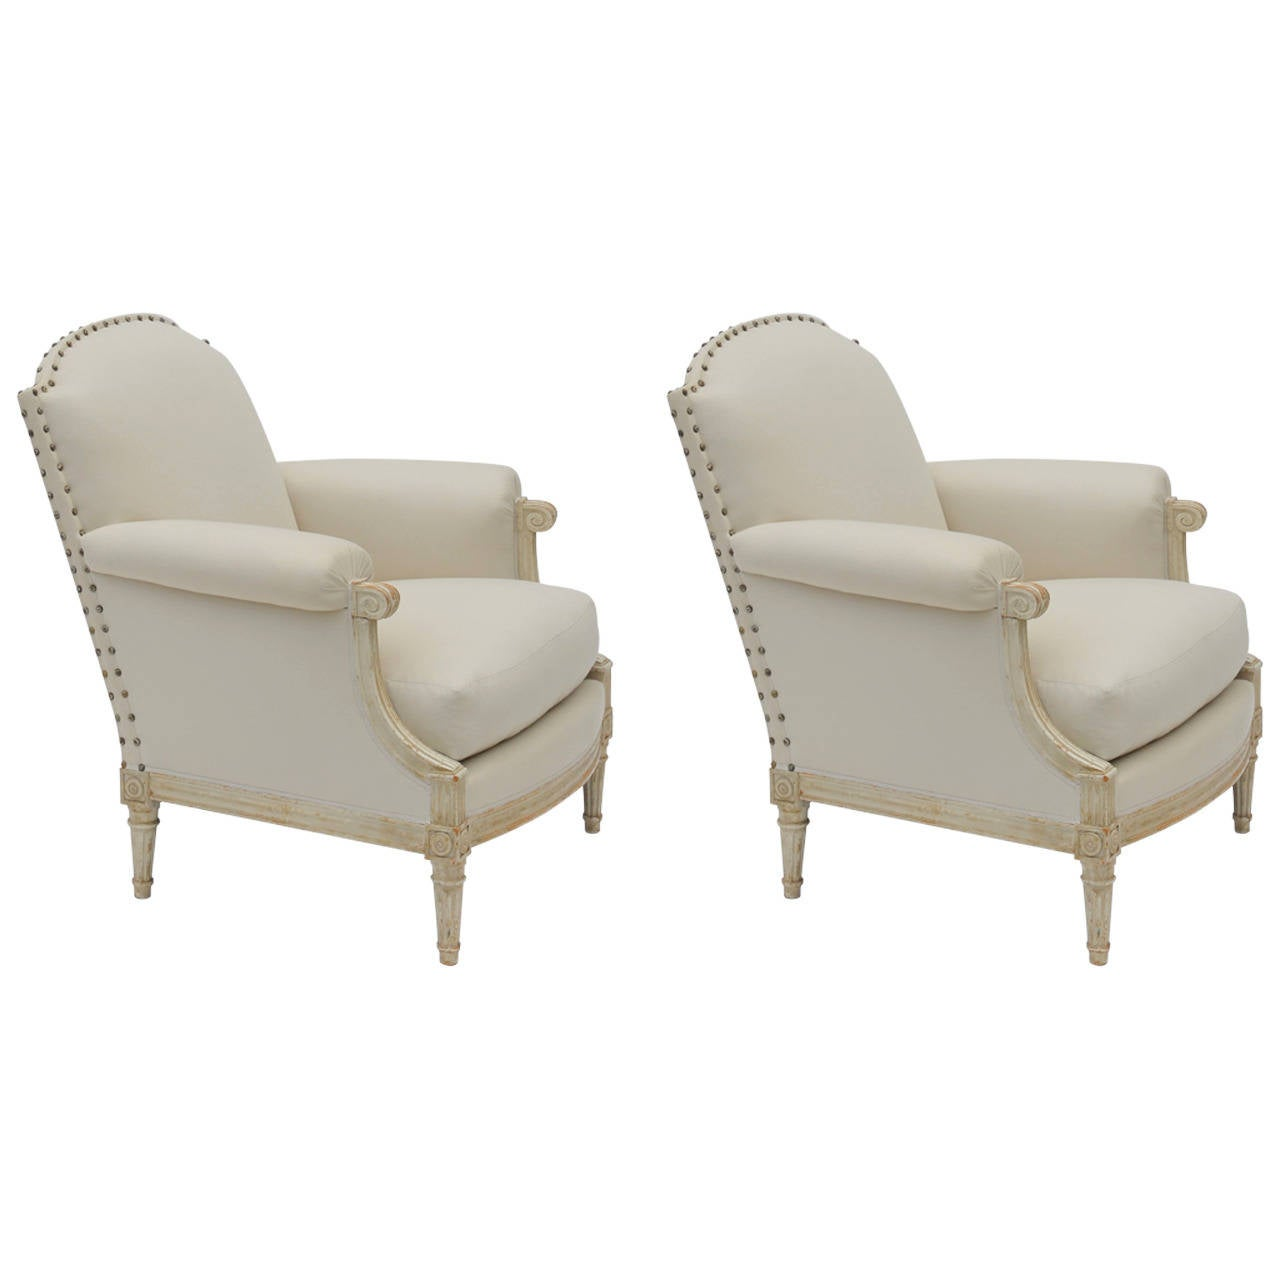 Pair of Exceptional Louis XVI Style Bergeres by Maison Jansen 1